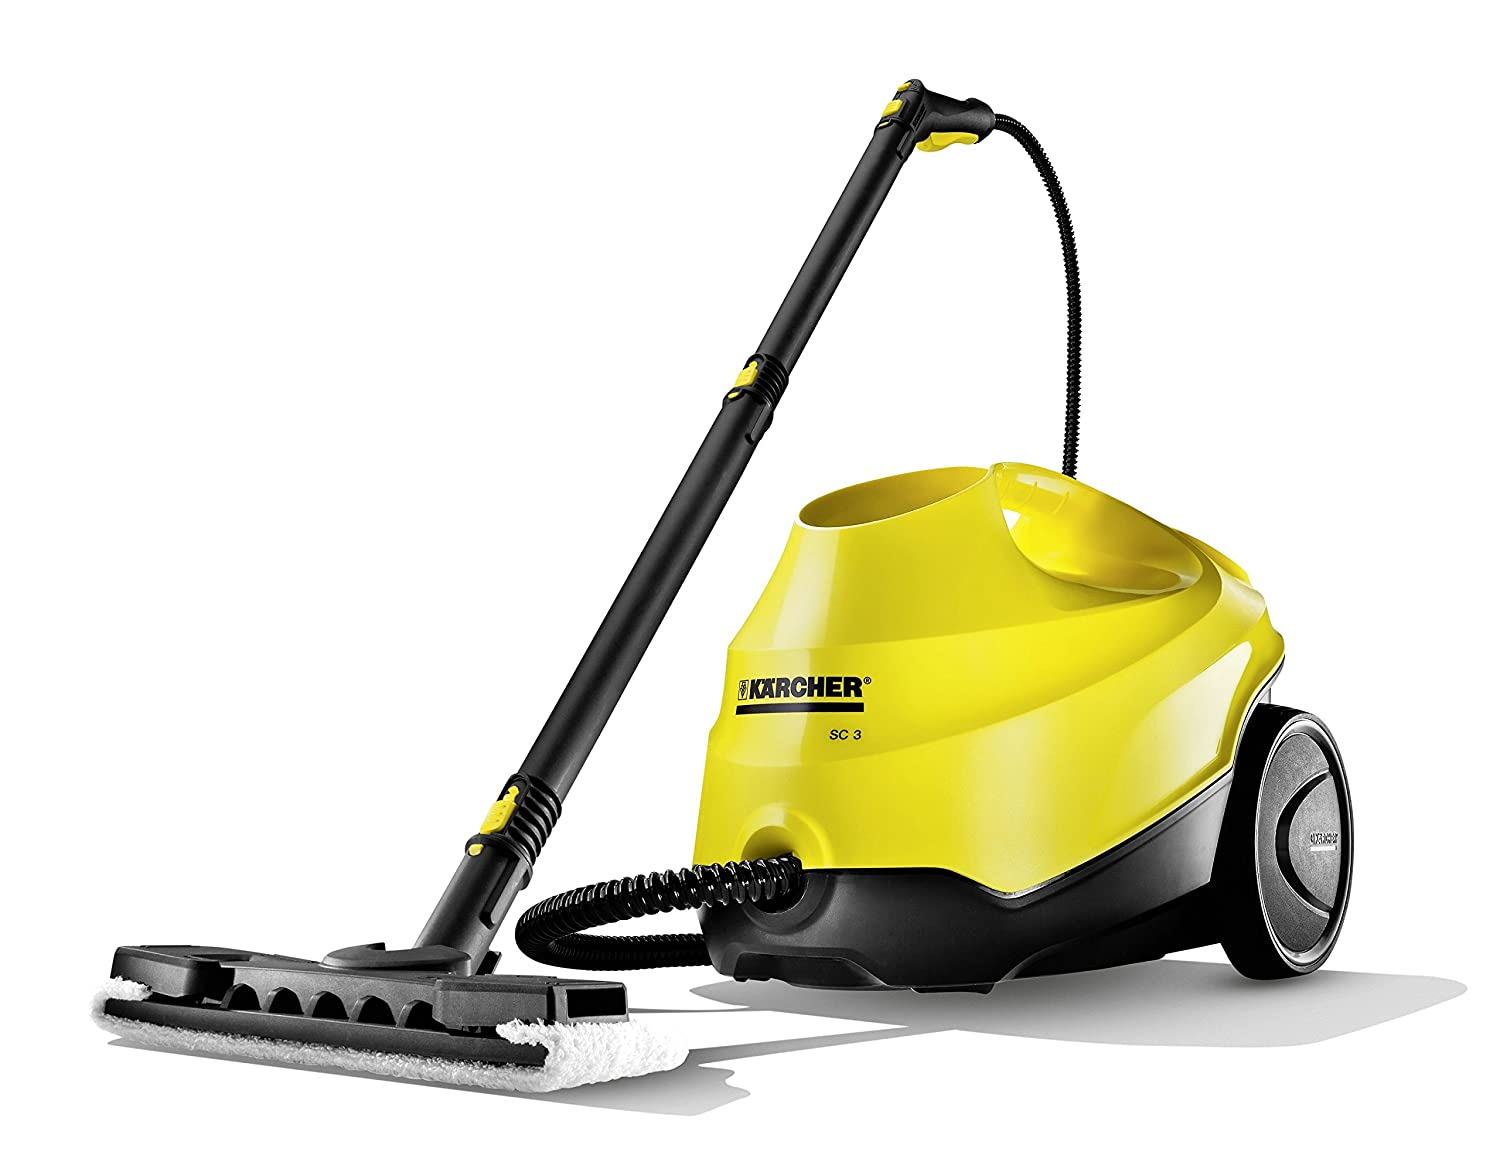 Maxi 8 bar cleaning equipment steam machines vacuum cleaners - Karcher Sc3 All In One Steam Cleaner 1900 W 3 5 Bar